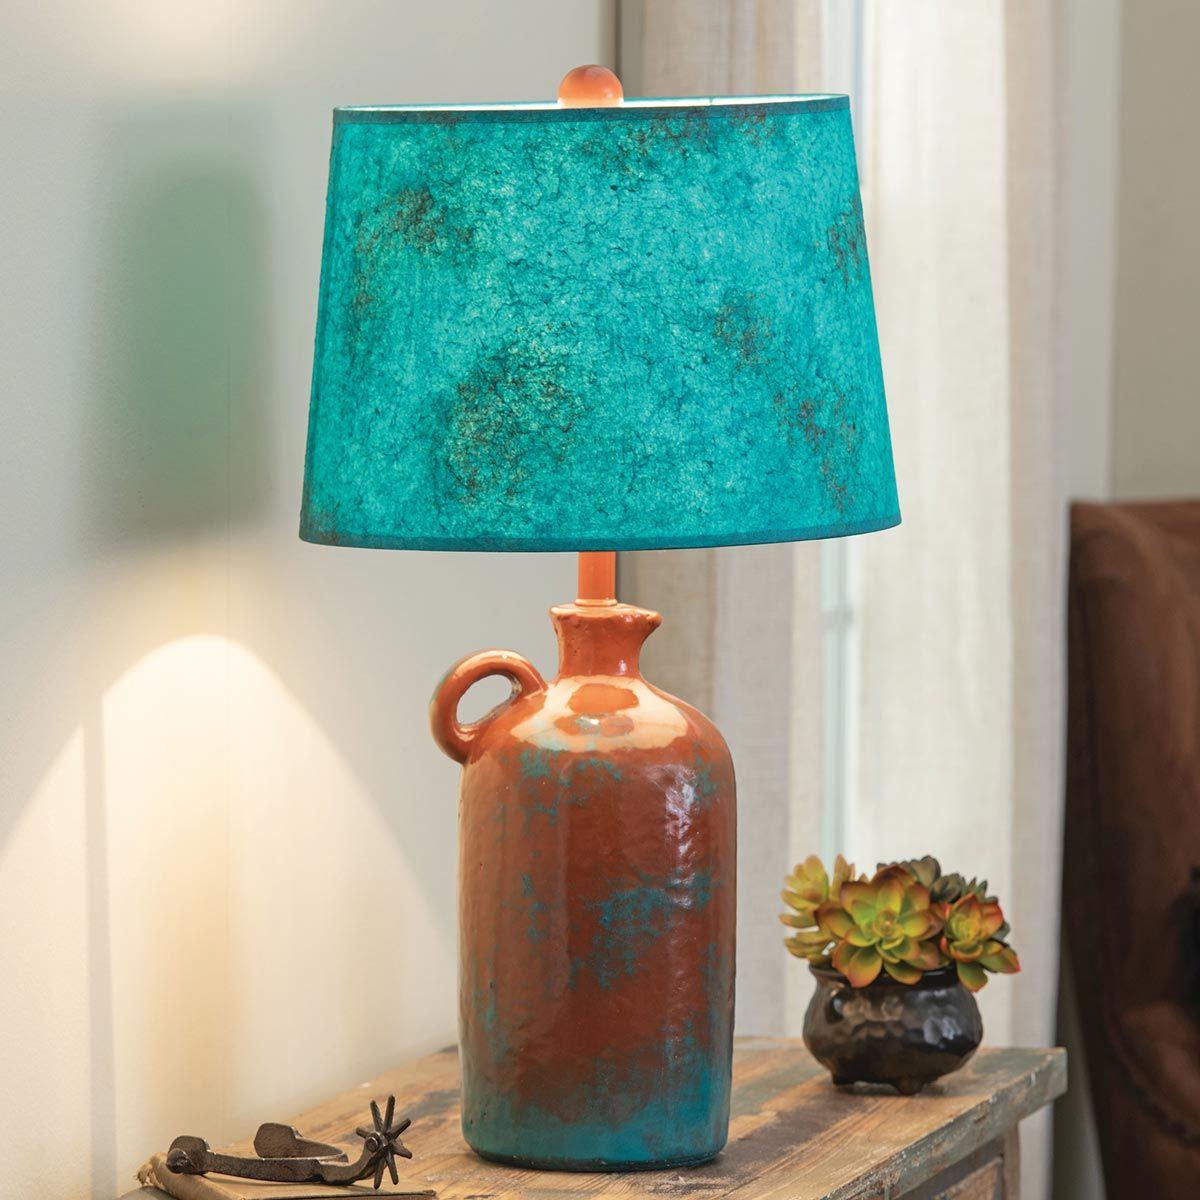 Adobe Canyon Pottery Jug Lamp